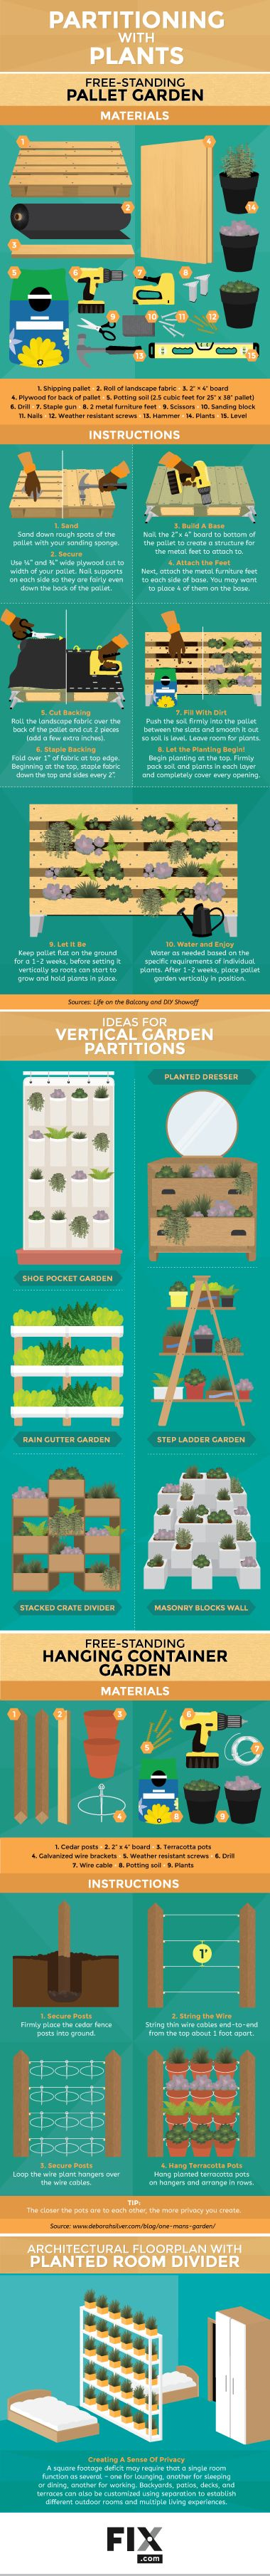 Creating a better outdoor space by partitioning out the garden with different planting designs.